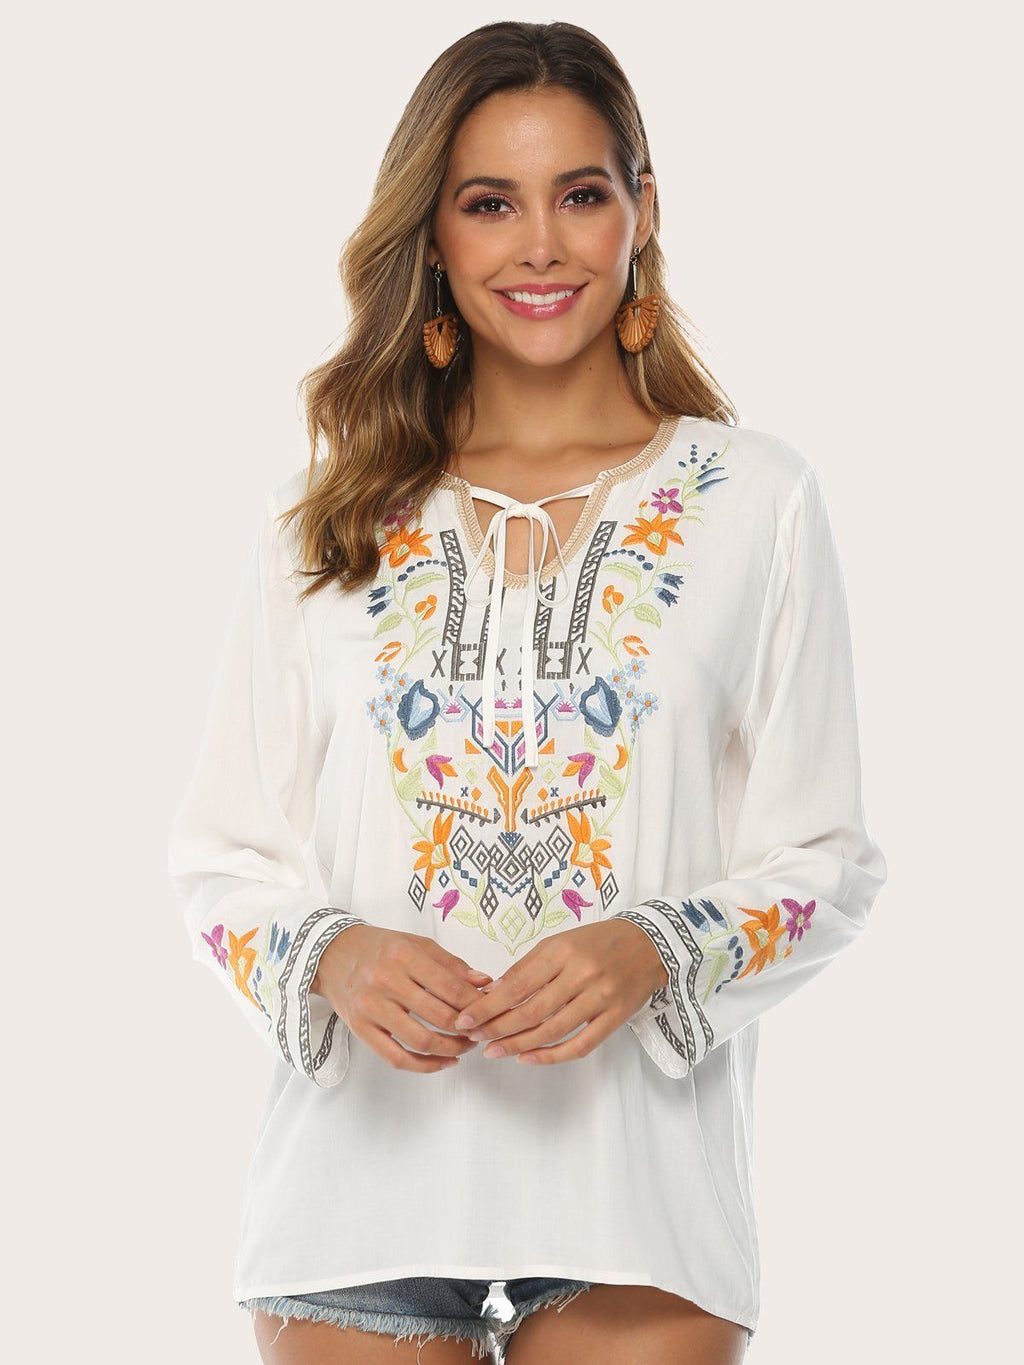 Bohemian Embroidered Floral V Neck Long Sleeve Blouses Best Gifts for the Season & Christmas - LuckinChic.com